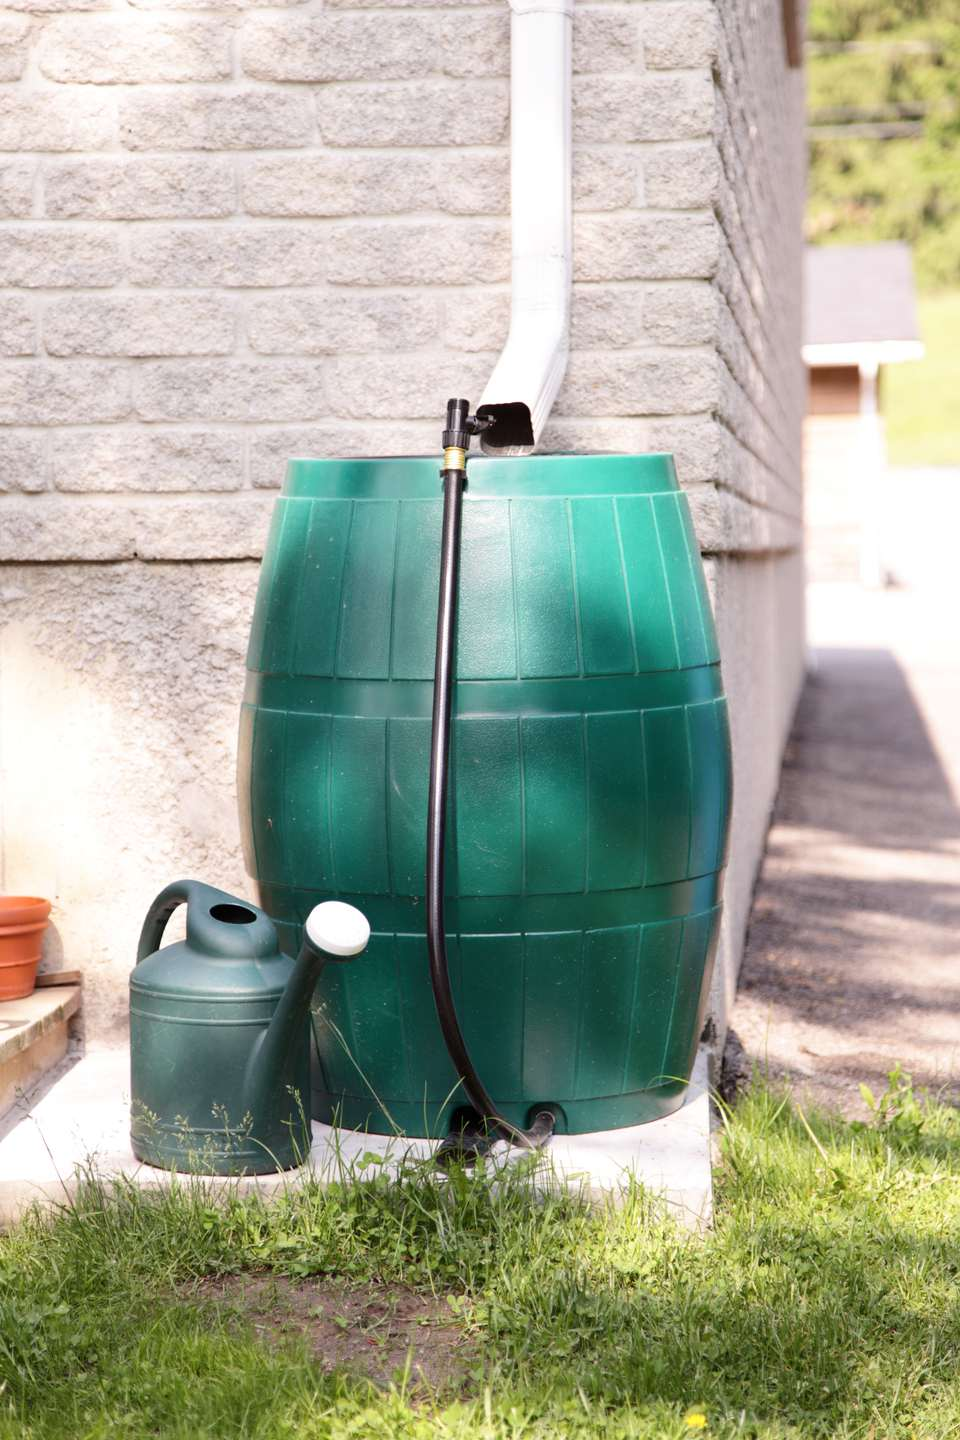 Rain barrel water conservation